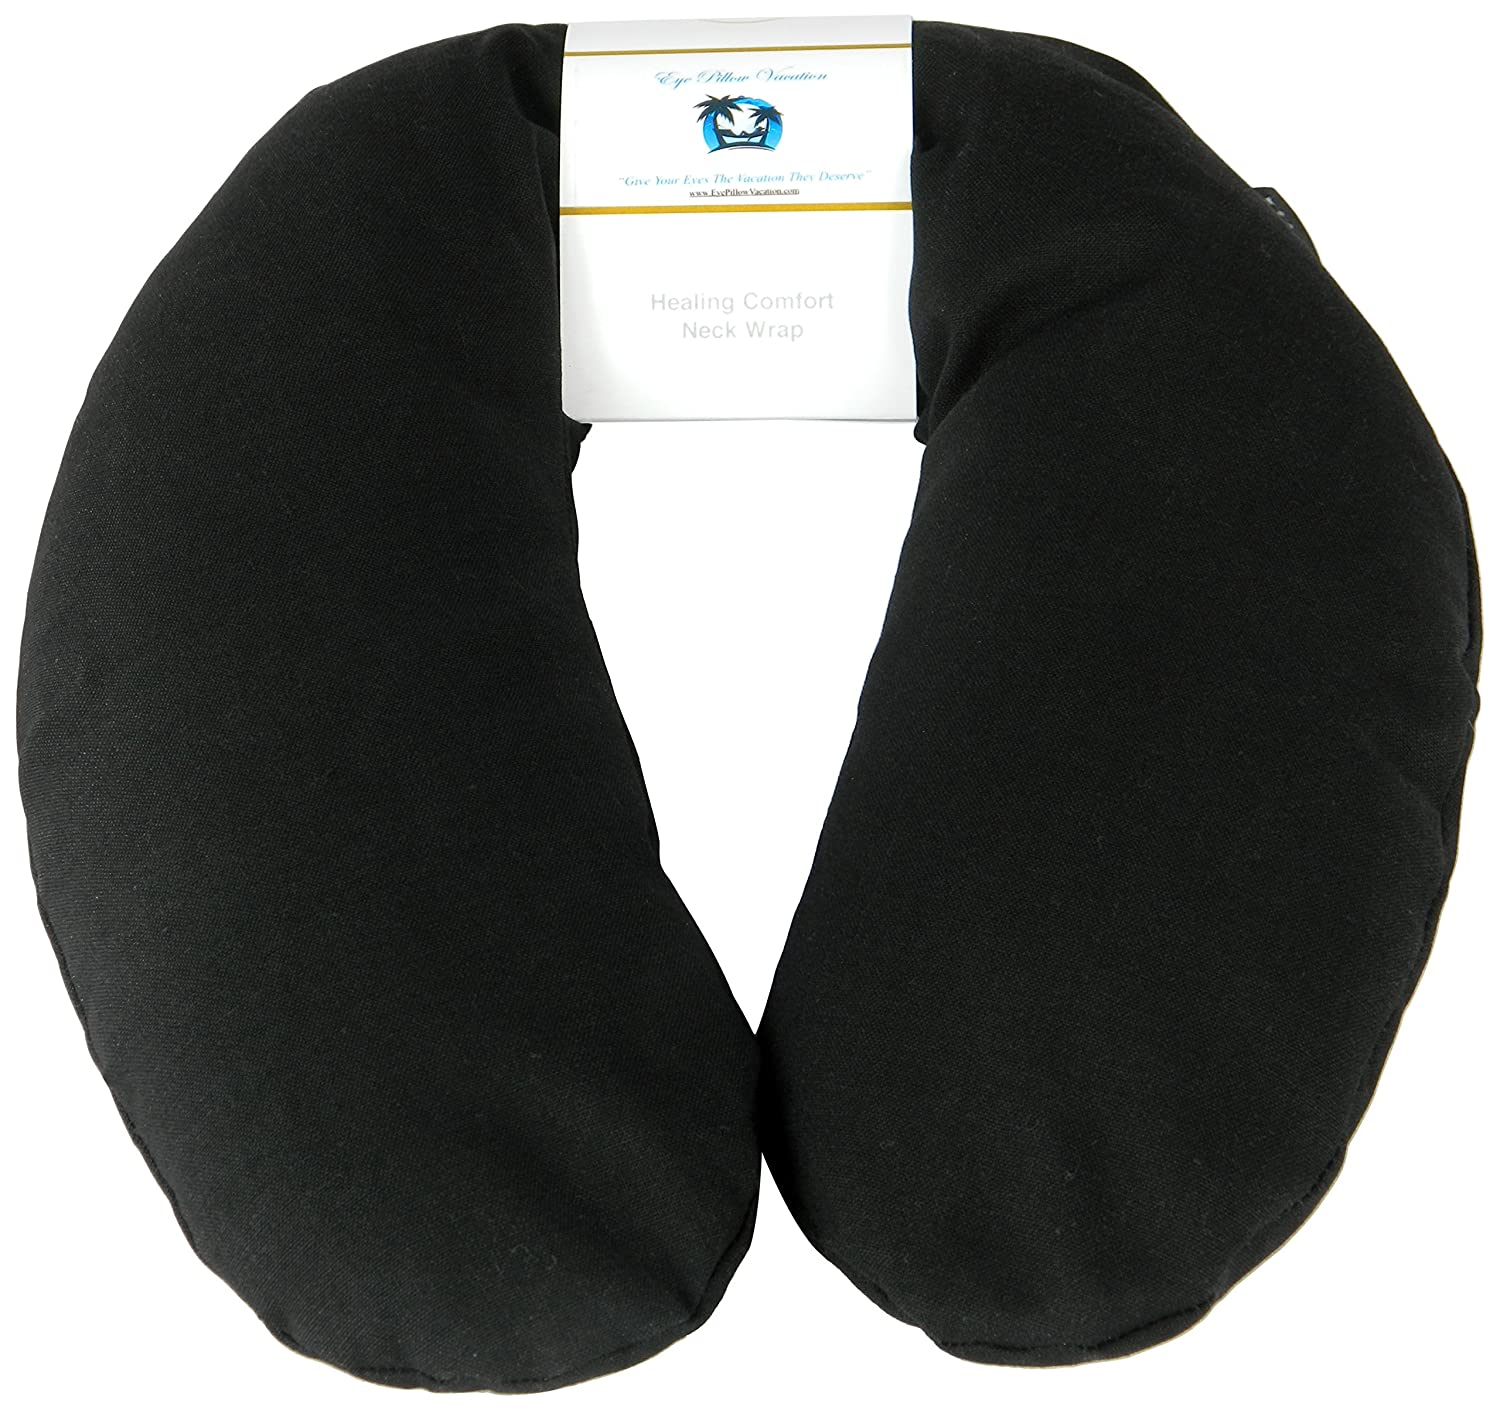 Neck Pain Relief Pillow - Hot / Cold Therapeutic Herbal Pillow For Shoulder & Neck Pain, Stress & Migraine Relief (Aqua - Silky Satin) COMIN18JU069061